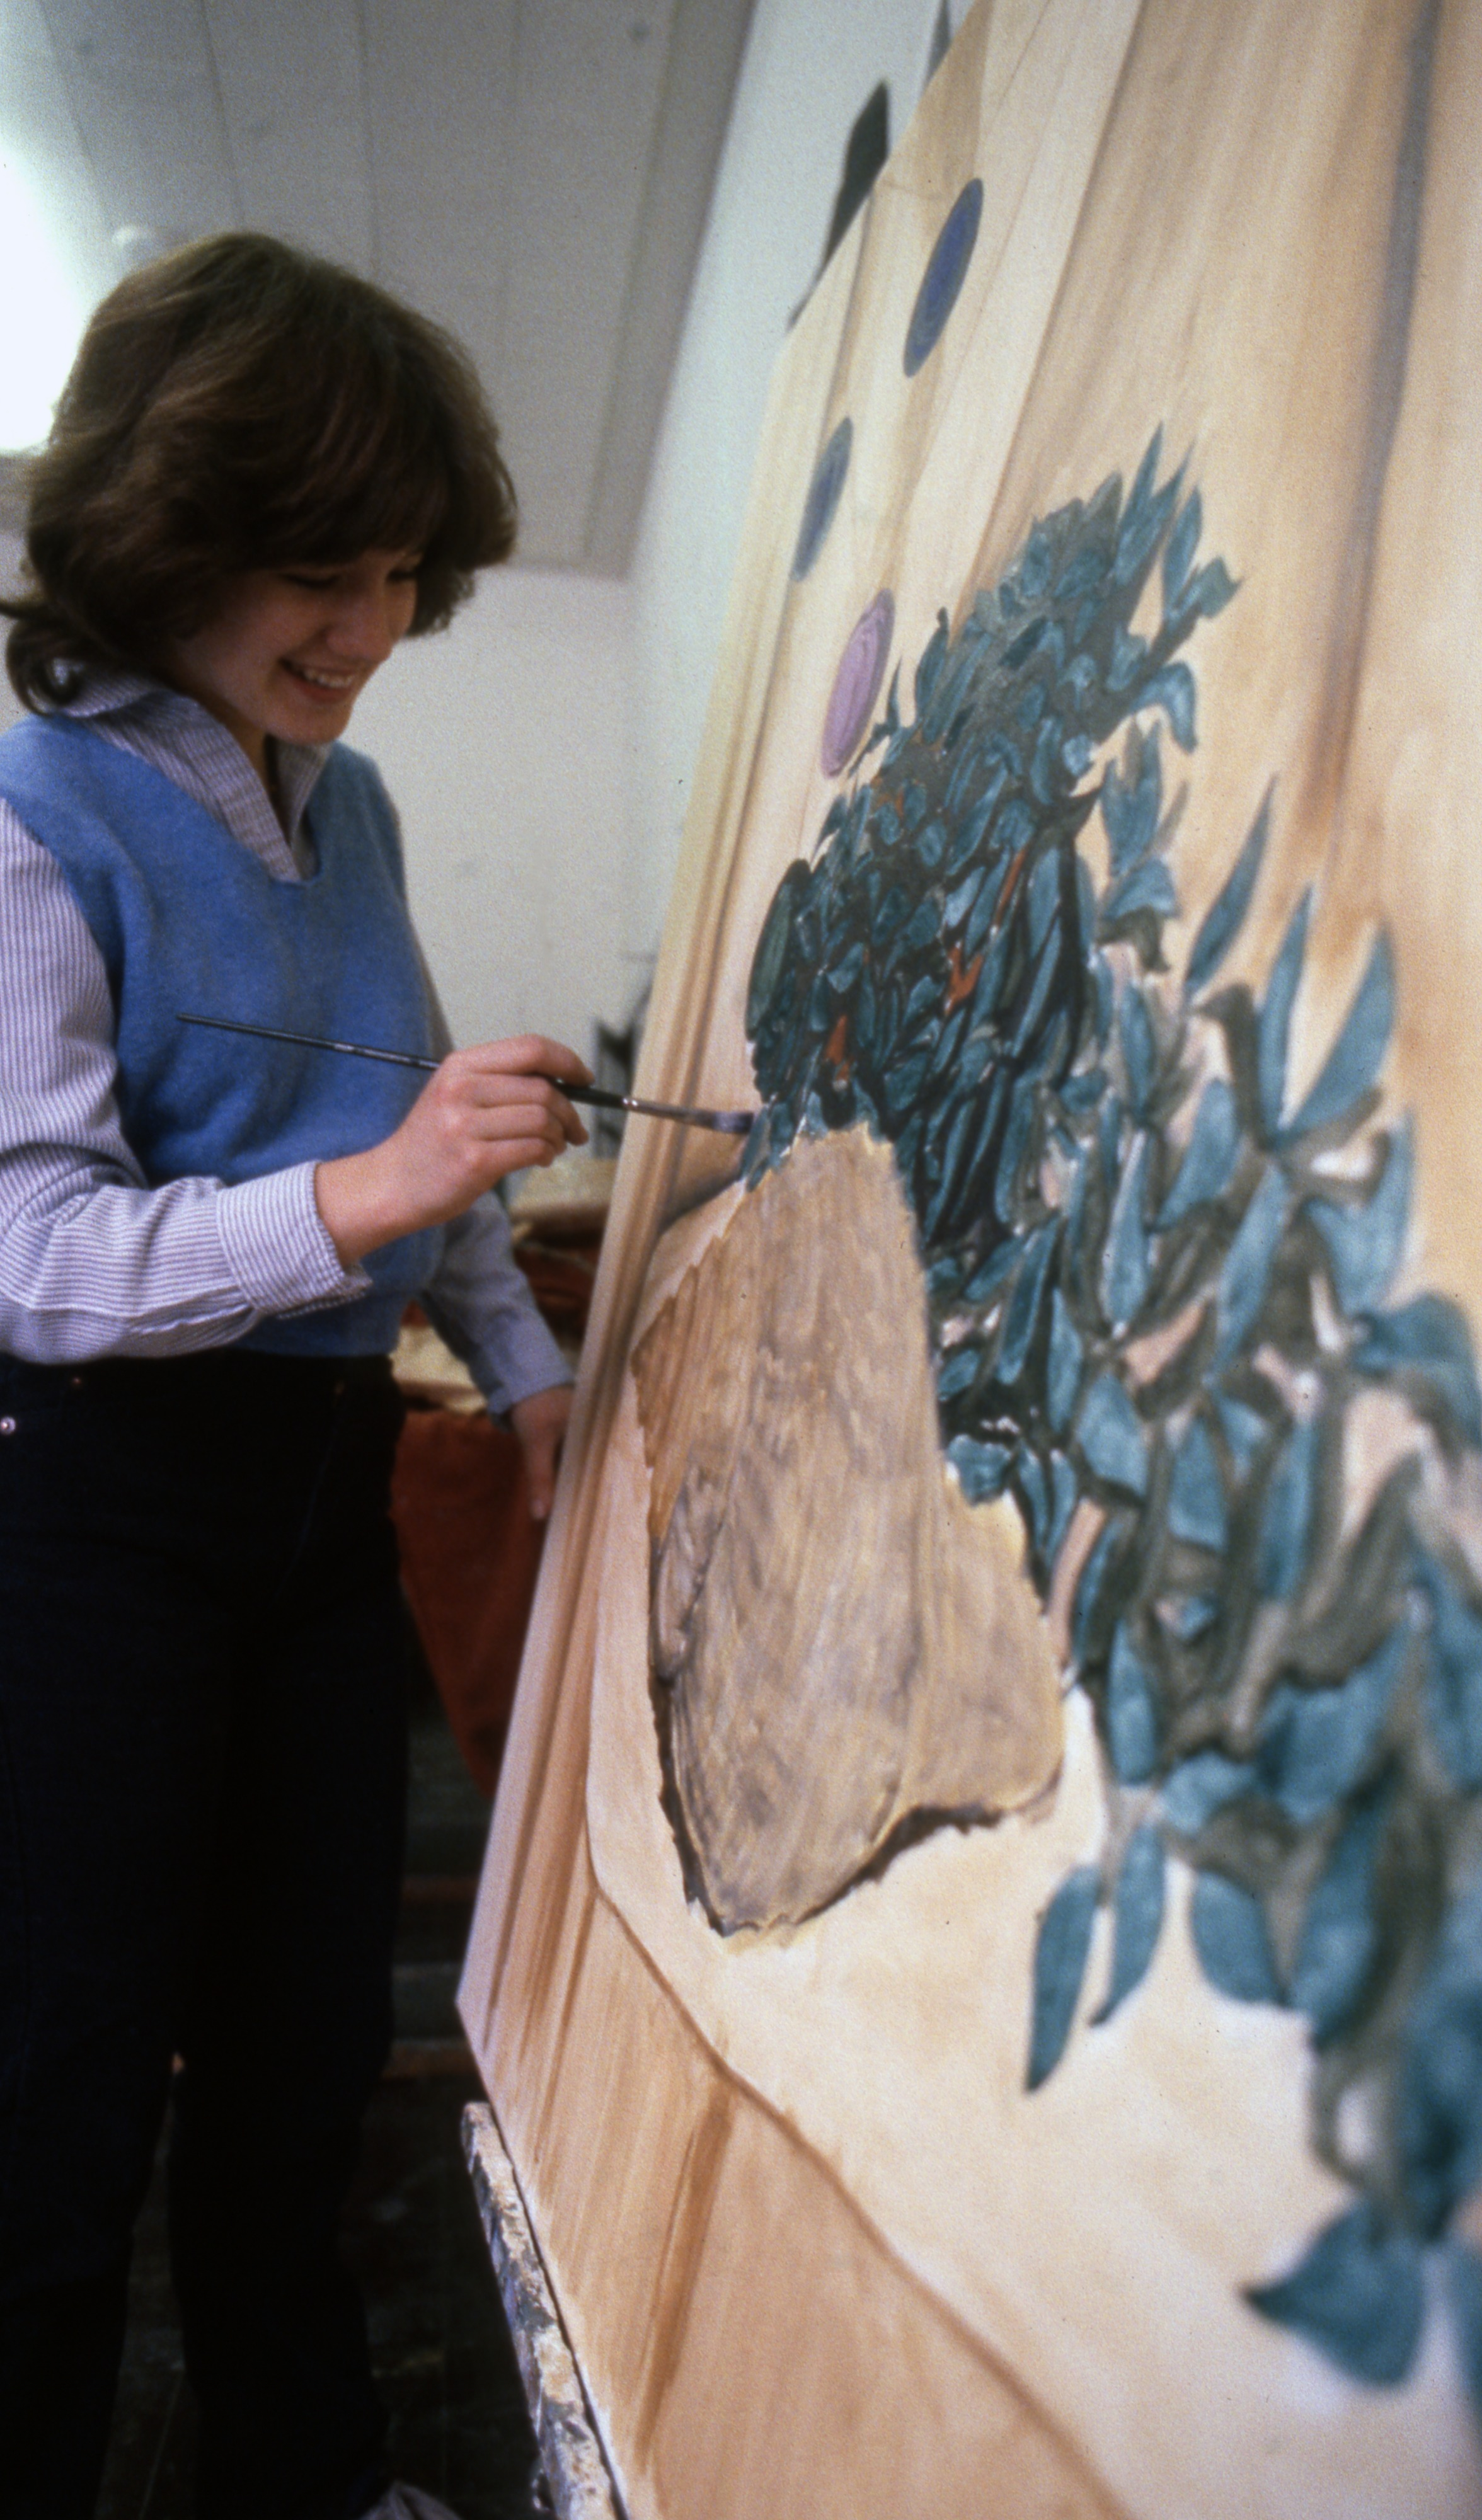 A Student Paints In A Community High School Art Class, March 1984 image